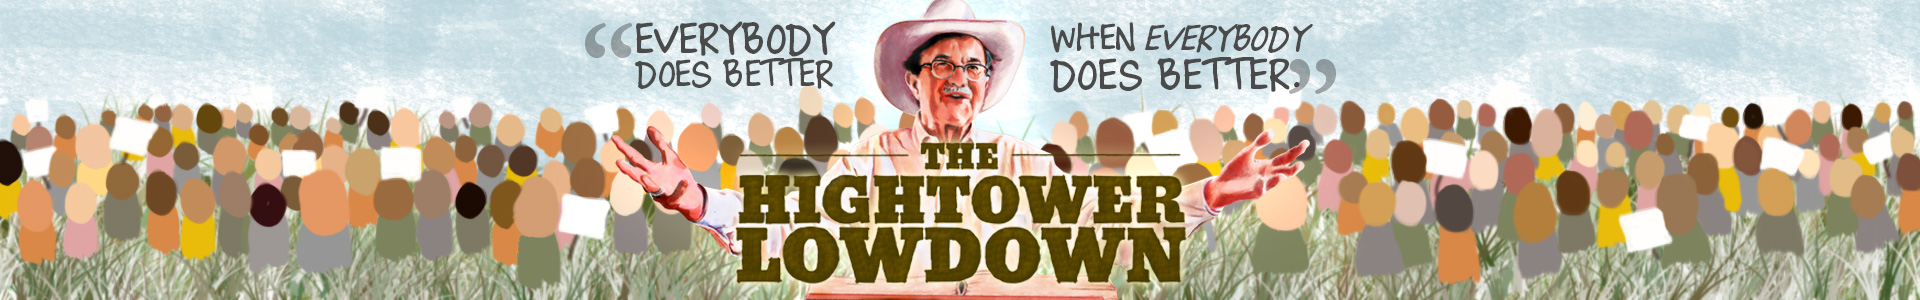 Hightower Lowdown logo